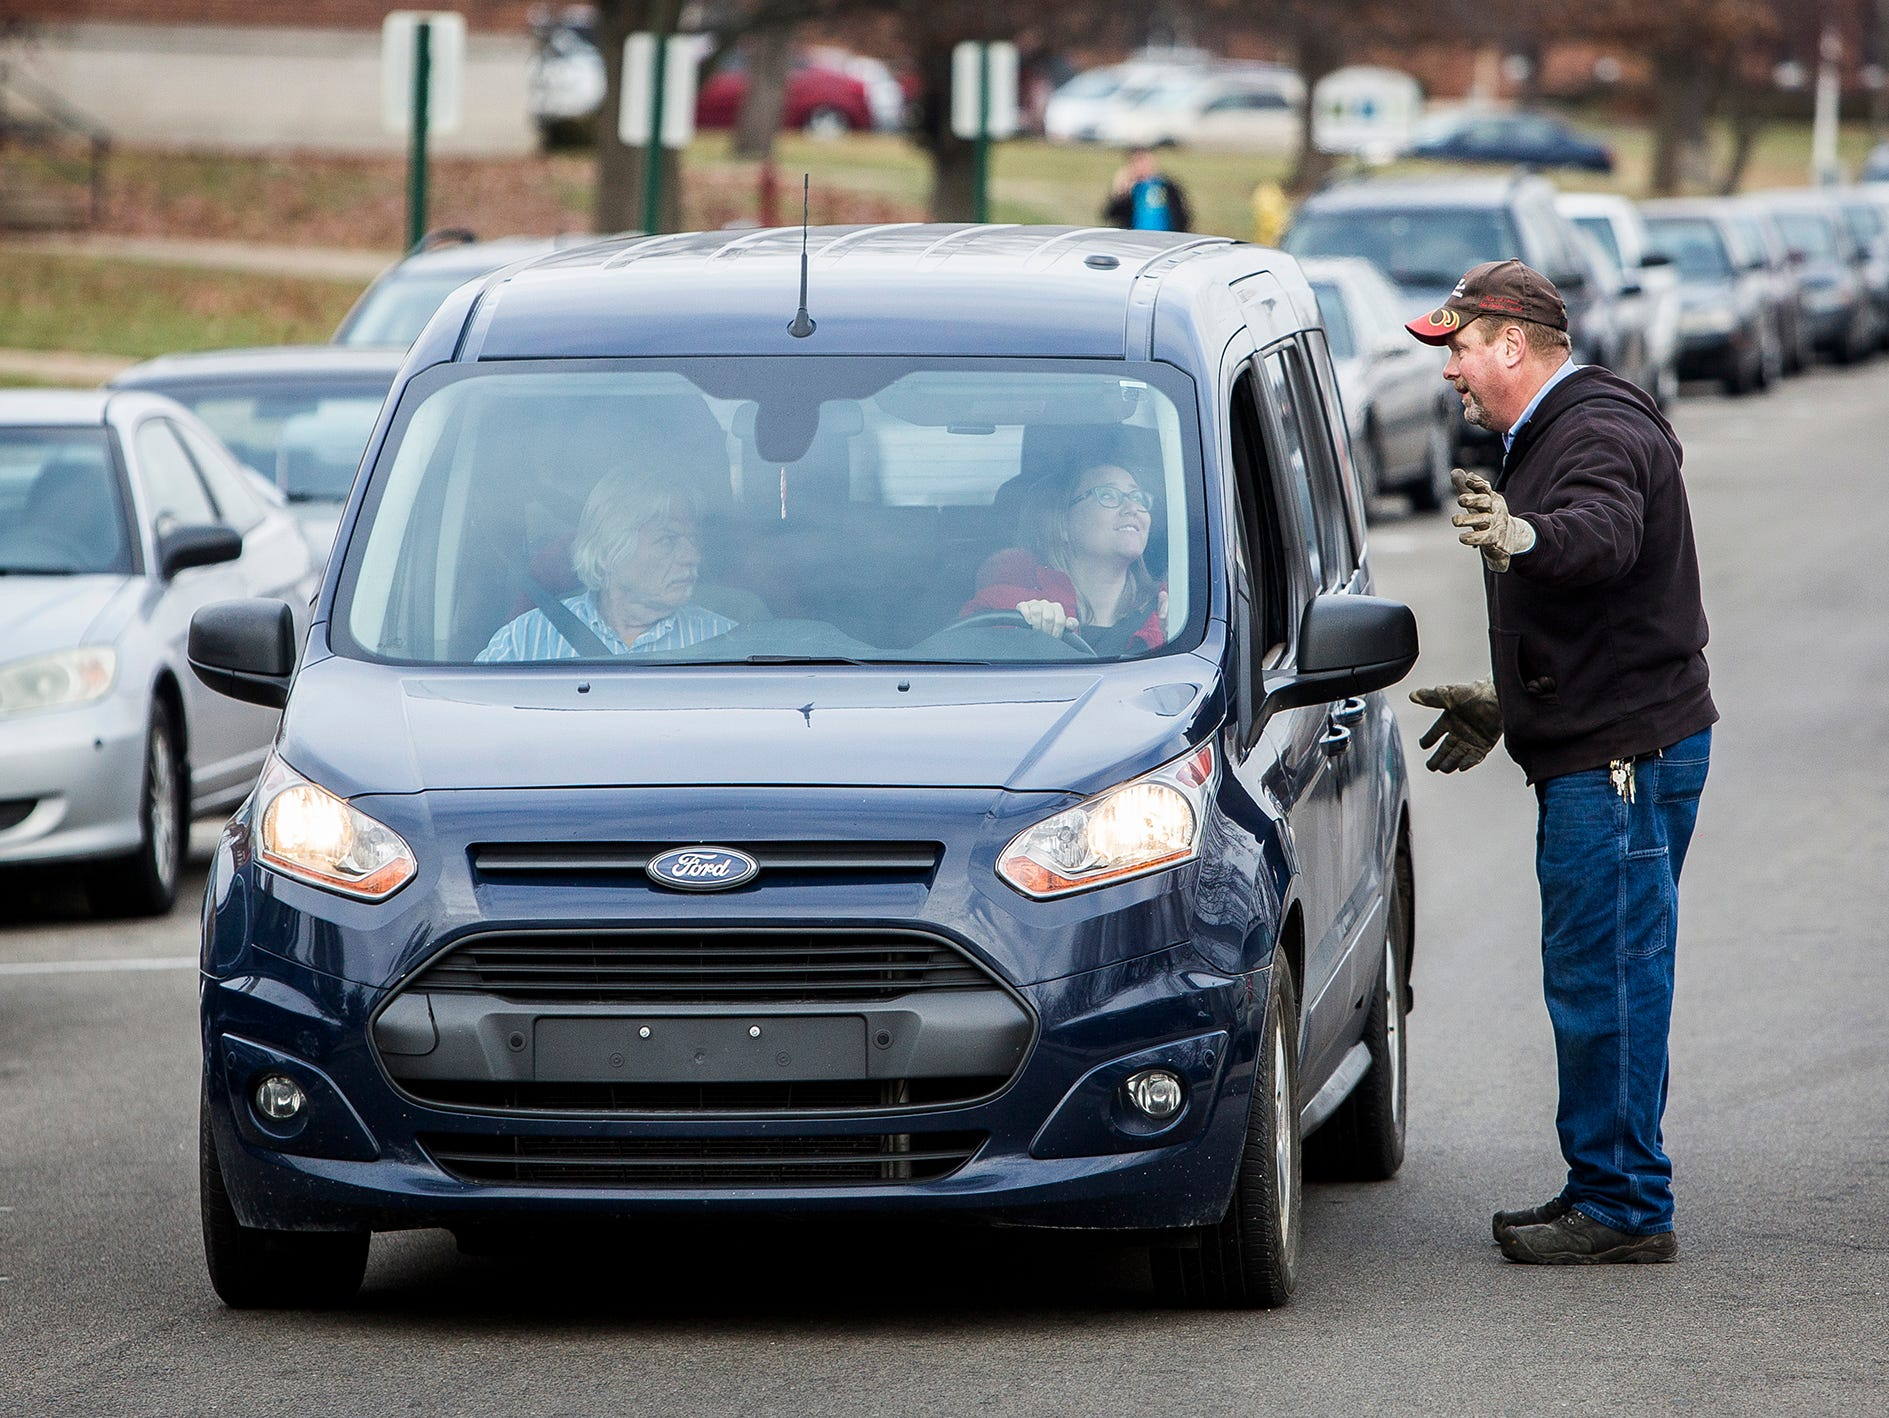 Hundreds of cars fill the parking lot and line the street outside of the Civic Hall Performing Arts Center where parents waited to reunite with their children following a shooting at Dennis Intermediate School Thursday morning.